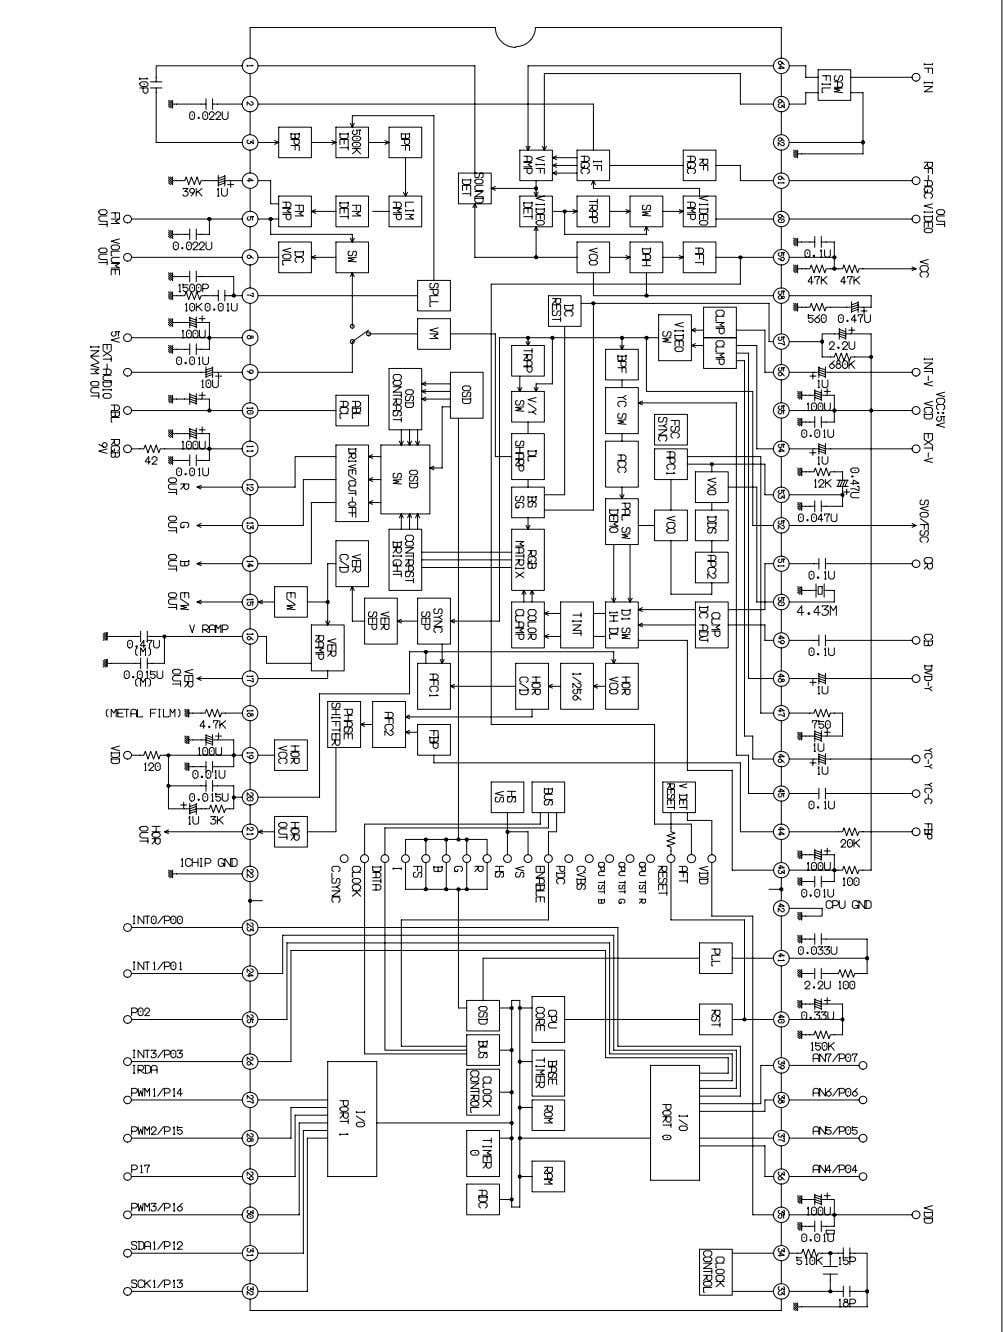 IC Block Diagrams IC201 < IF/Video/Chroma/Def./CPU > LA76933 -5-